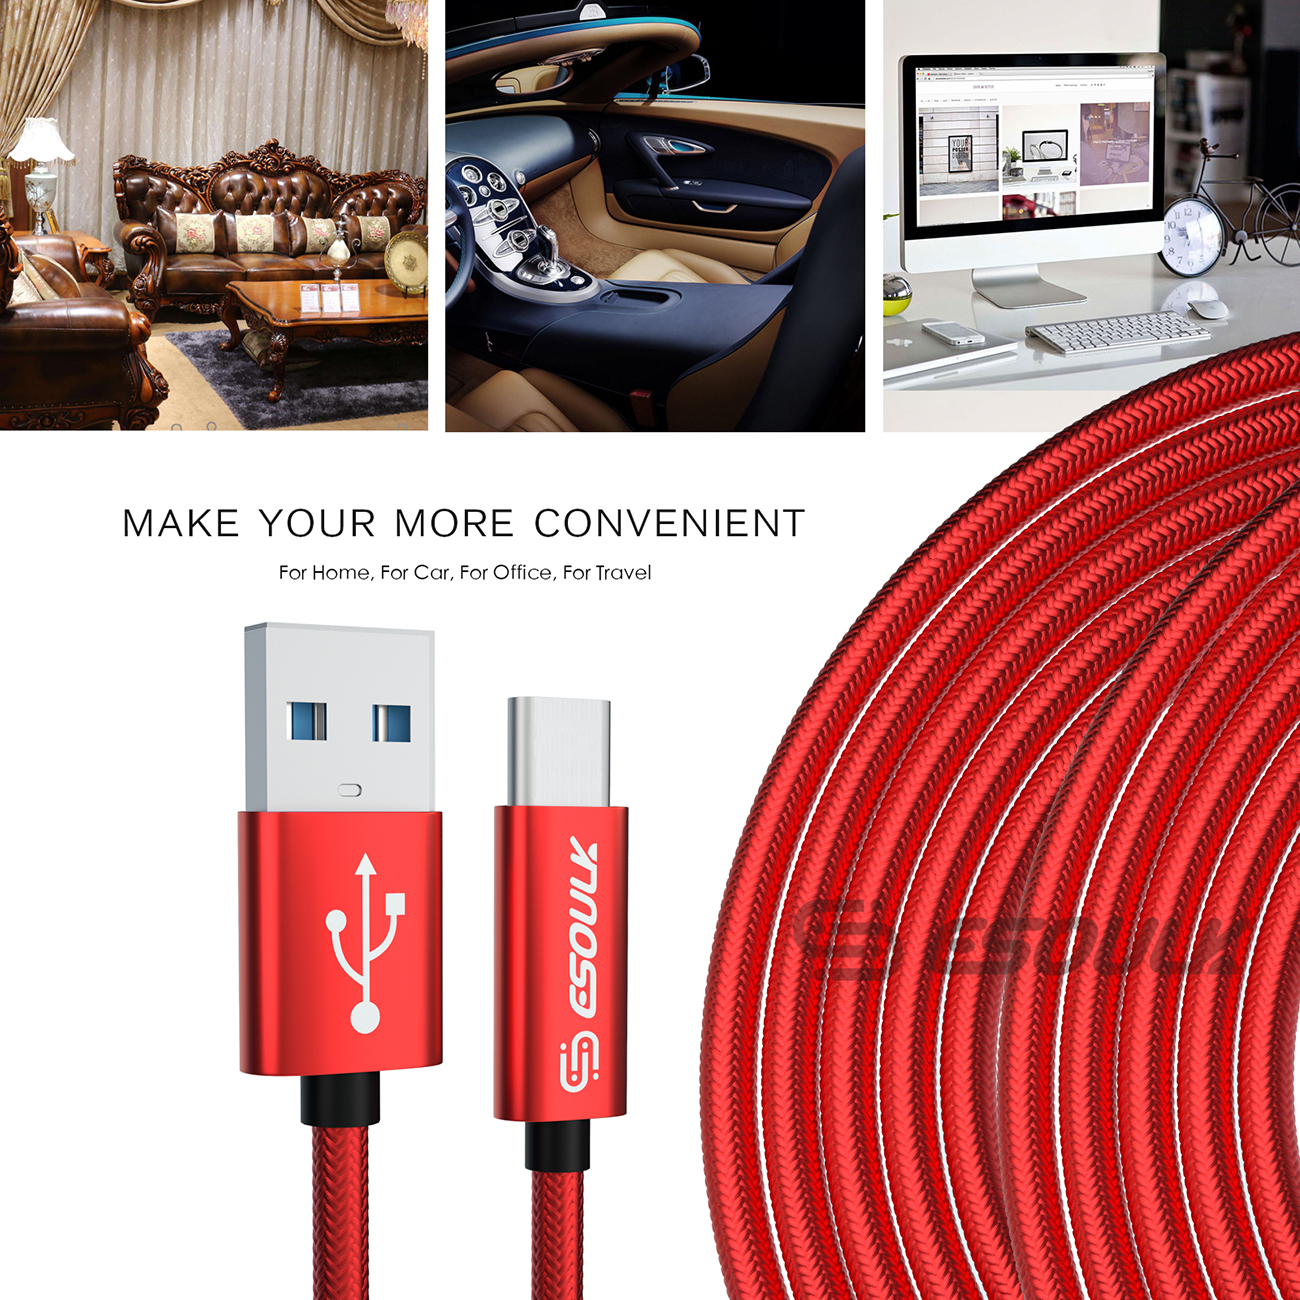 Esoulk 1.7A 10FT USB Cable For Type-C In Red